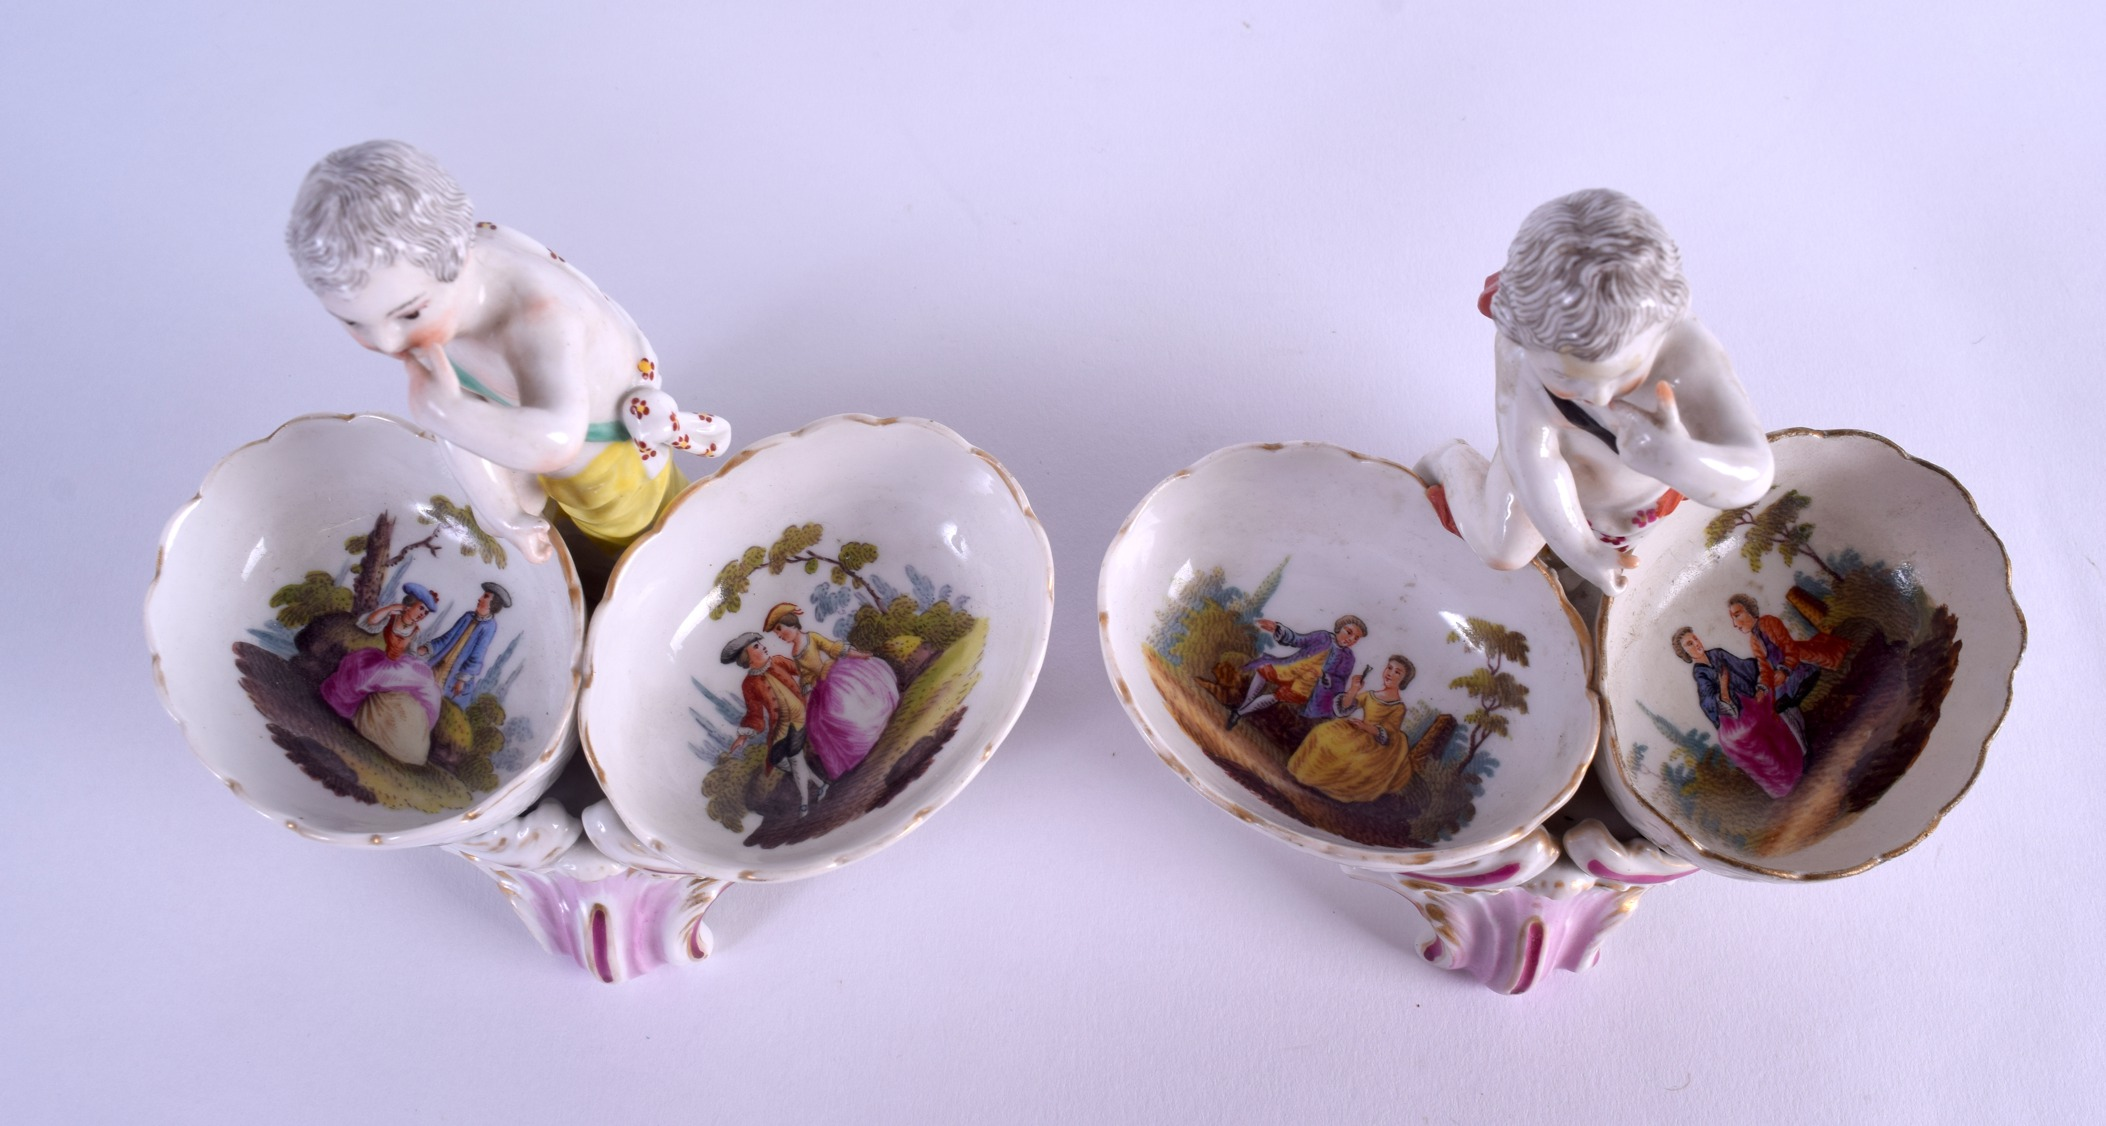 Lot 55 - A PAIR OF 19TH CENTURY KPM BERLIN PORCELAIN FIGURAL TABLE SALTS painted with figures within